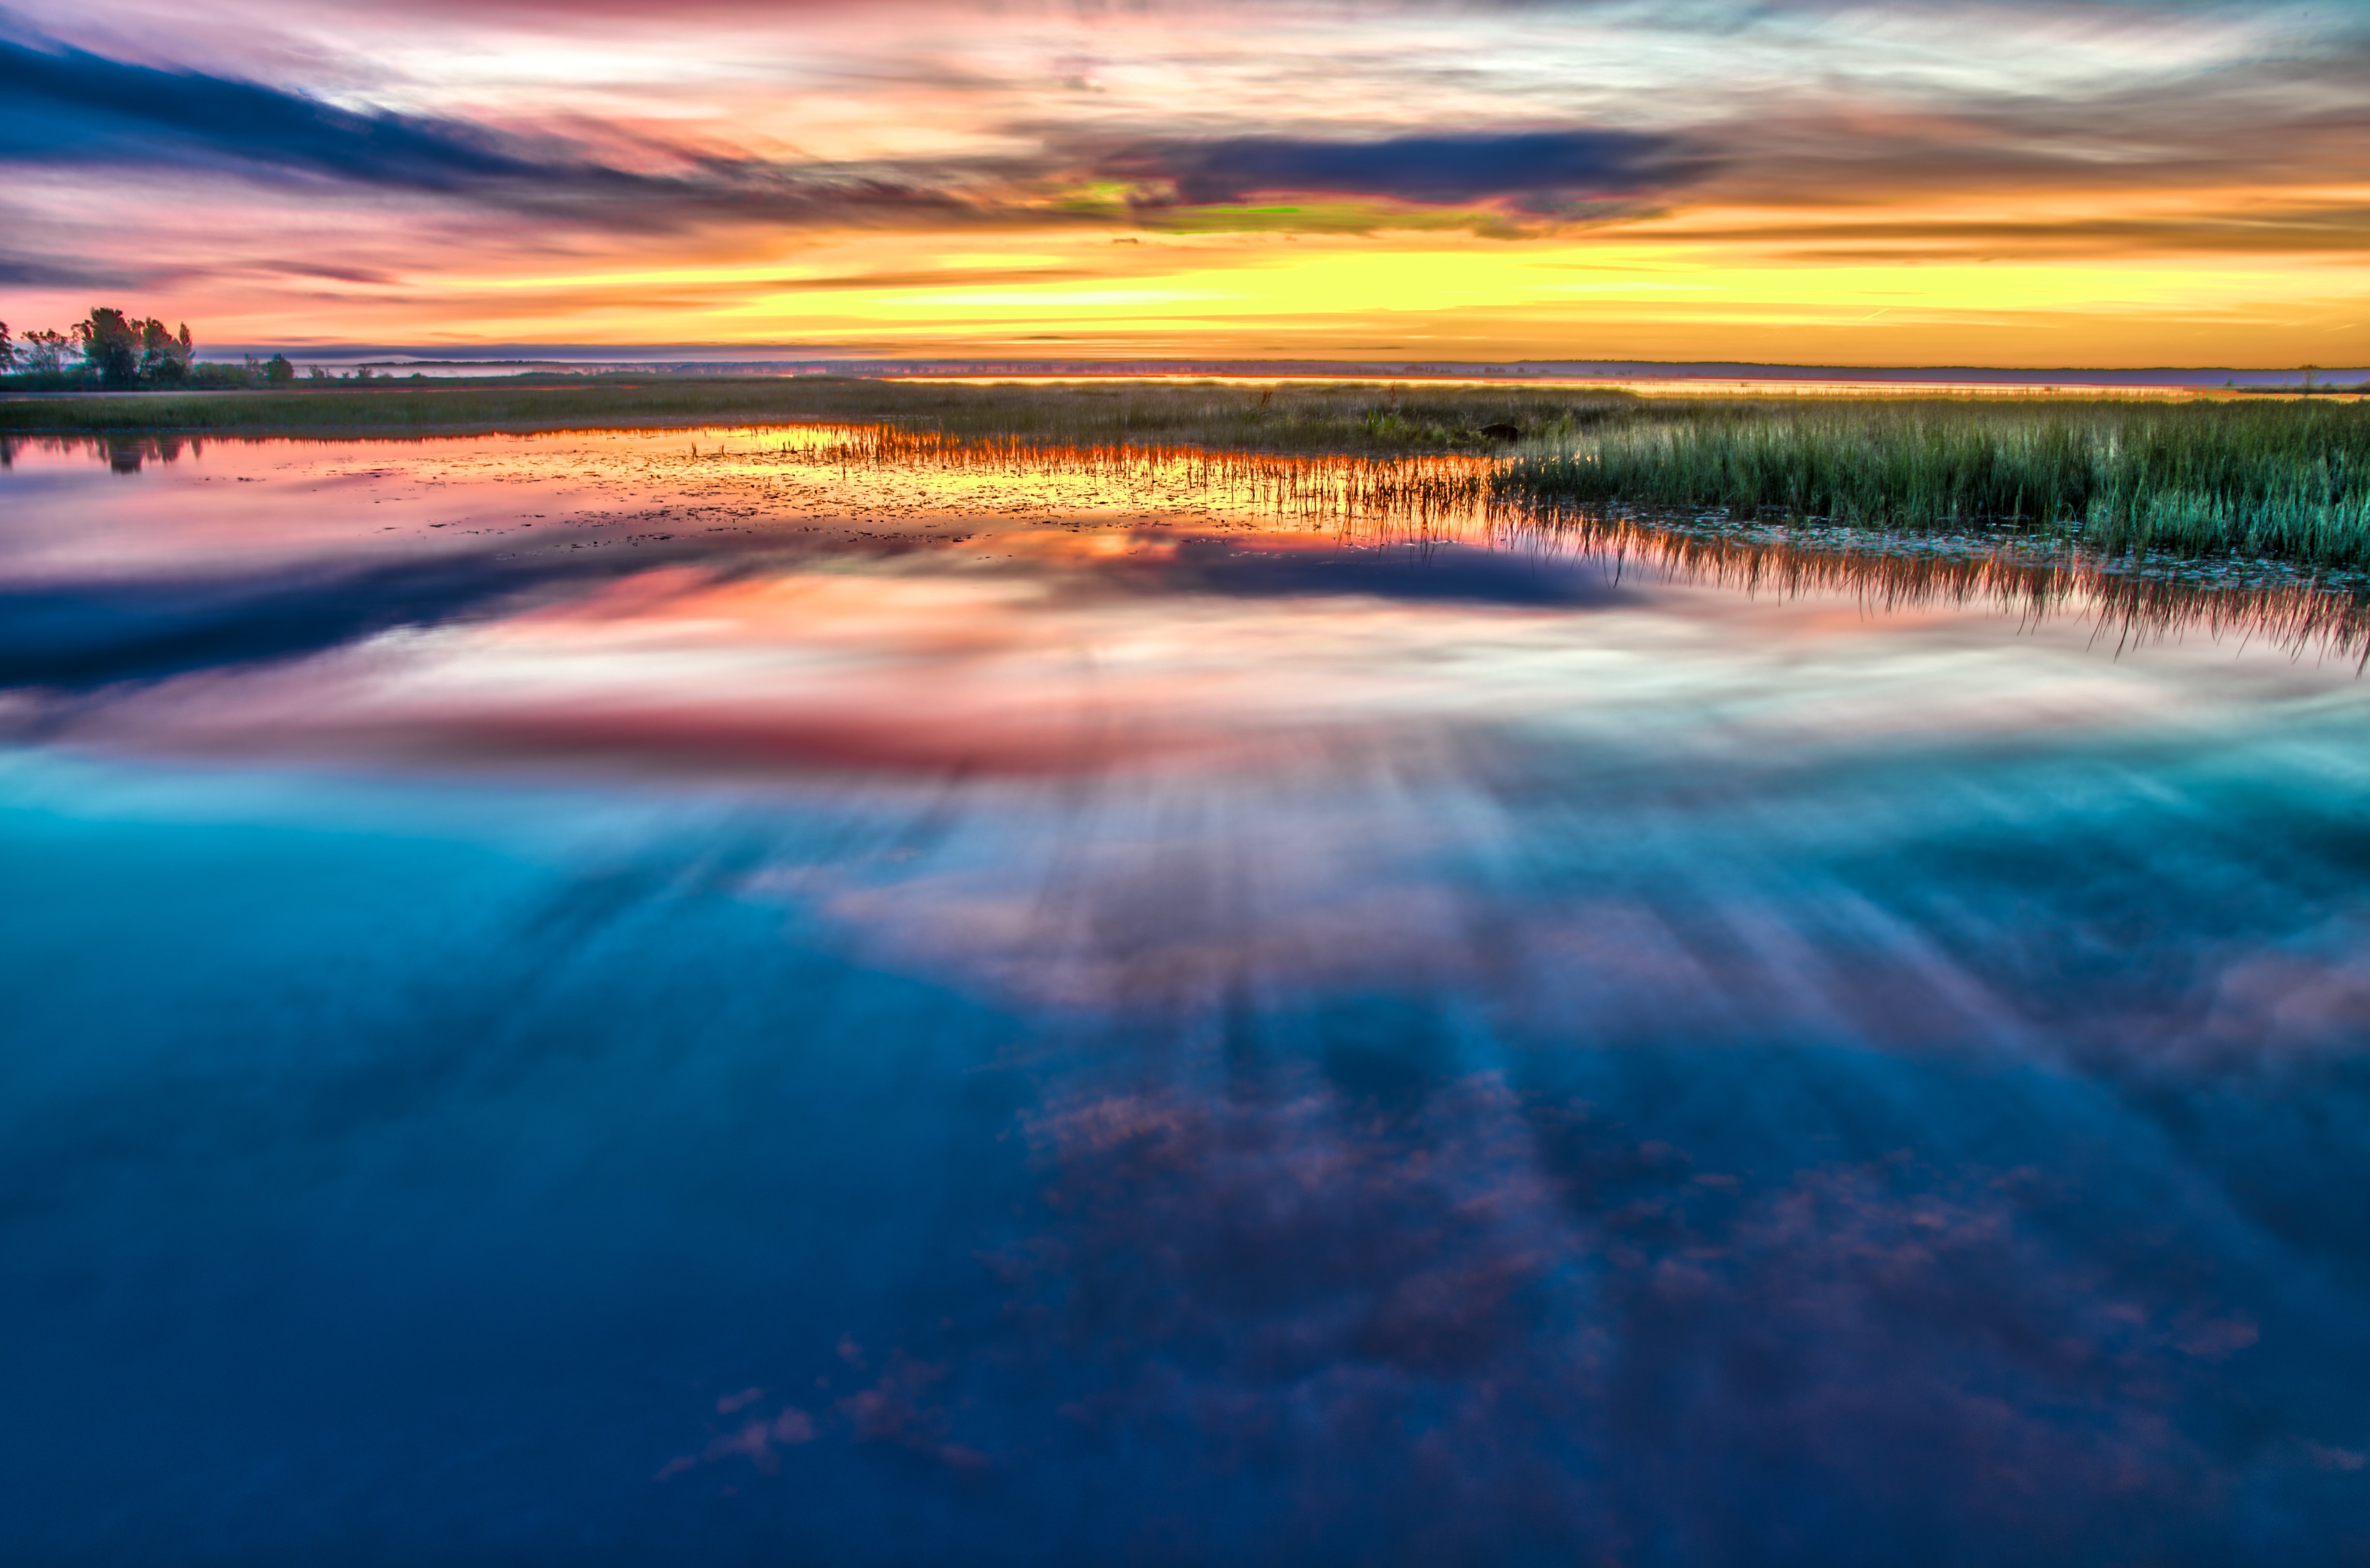 A reflection of the colorful sunset in the lake surrounded by grass